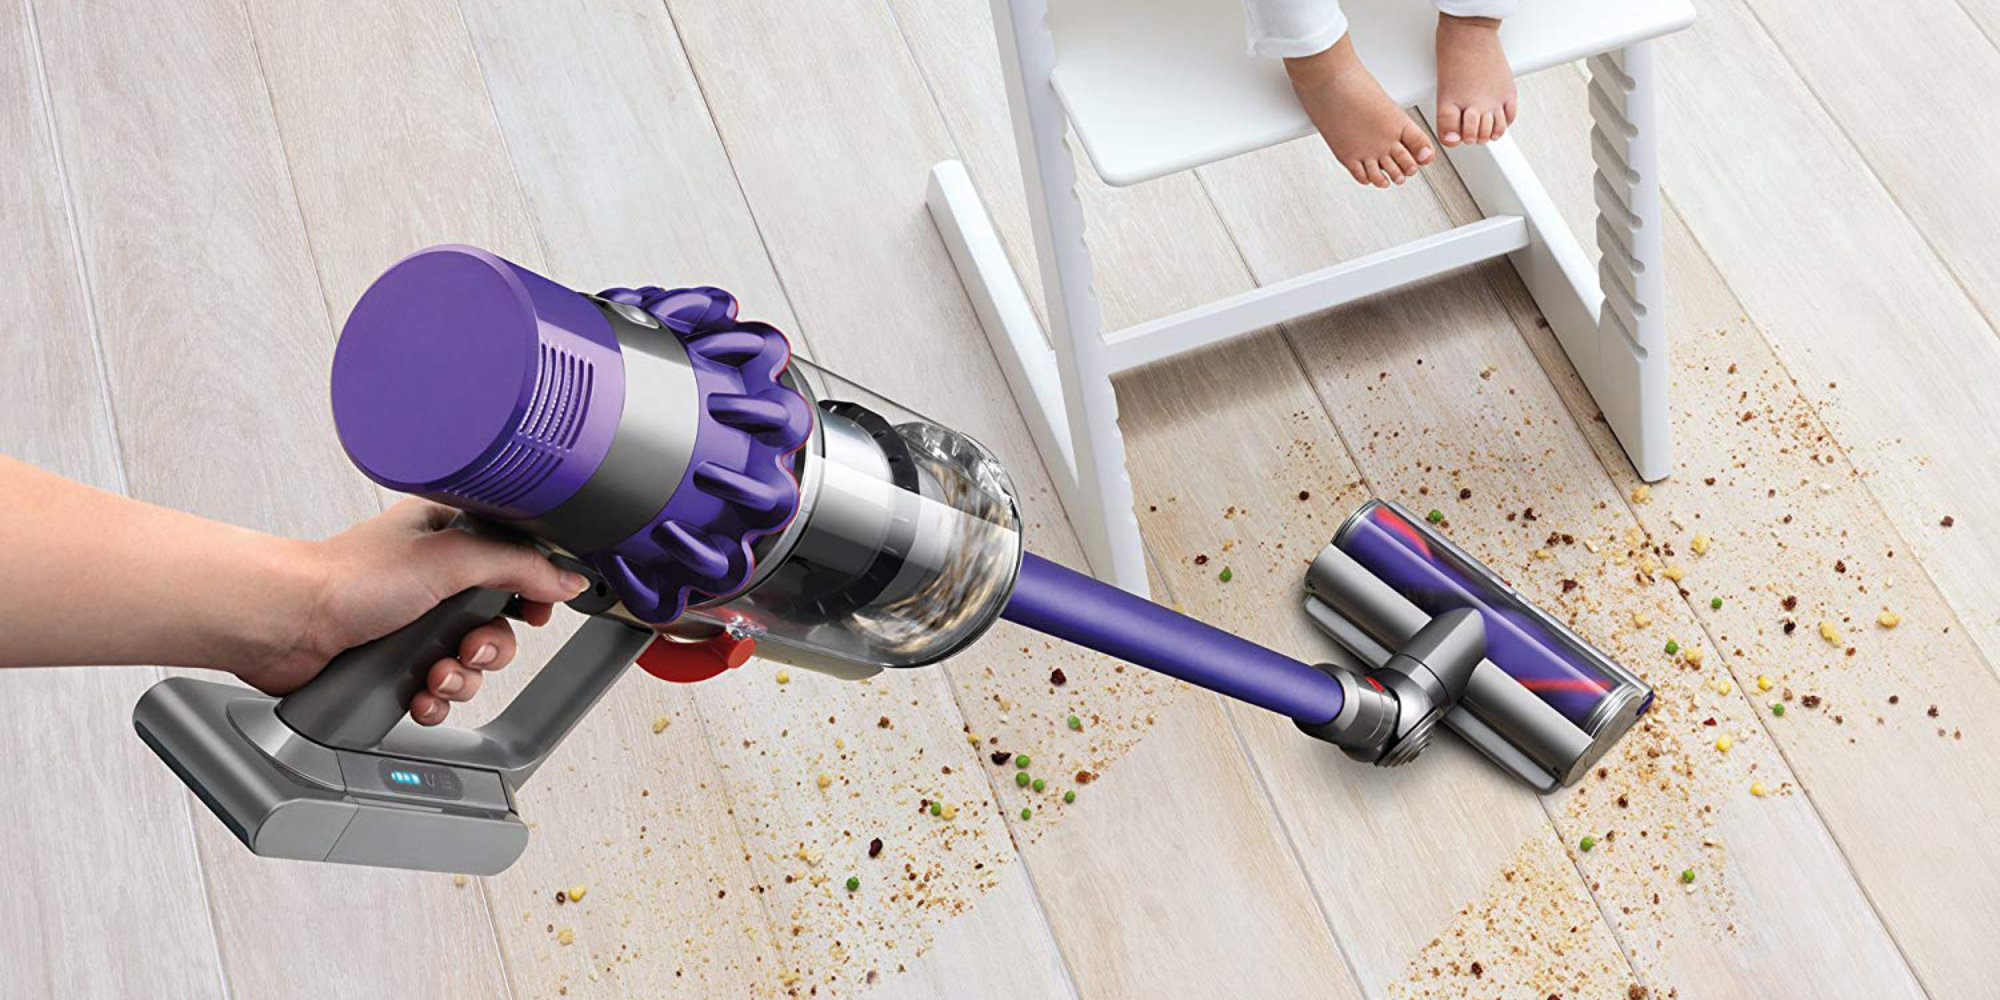 Dyson's Cyclone V10 Animal cordless vacuum returns to low of $350 ($200 off) - 9to5Toys